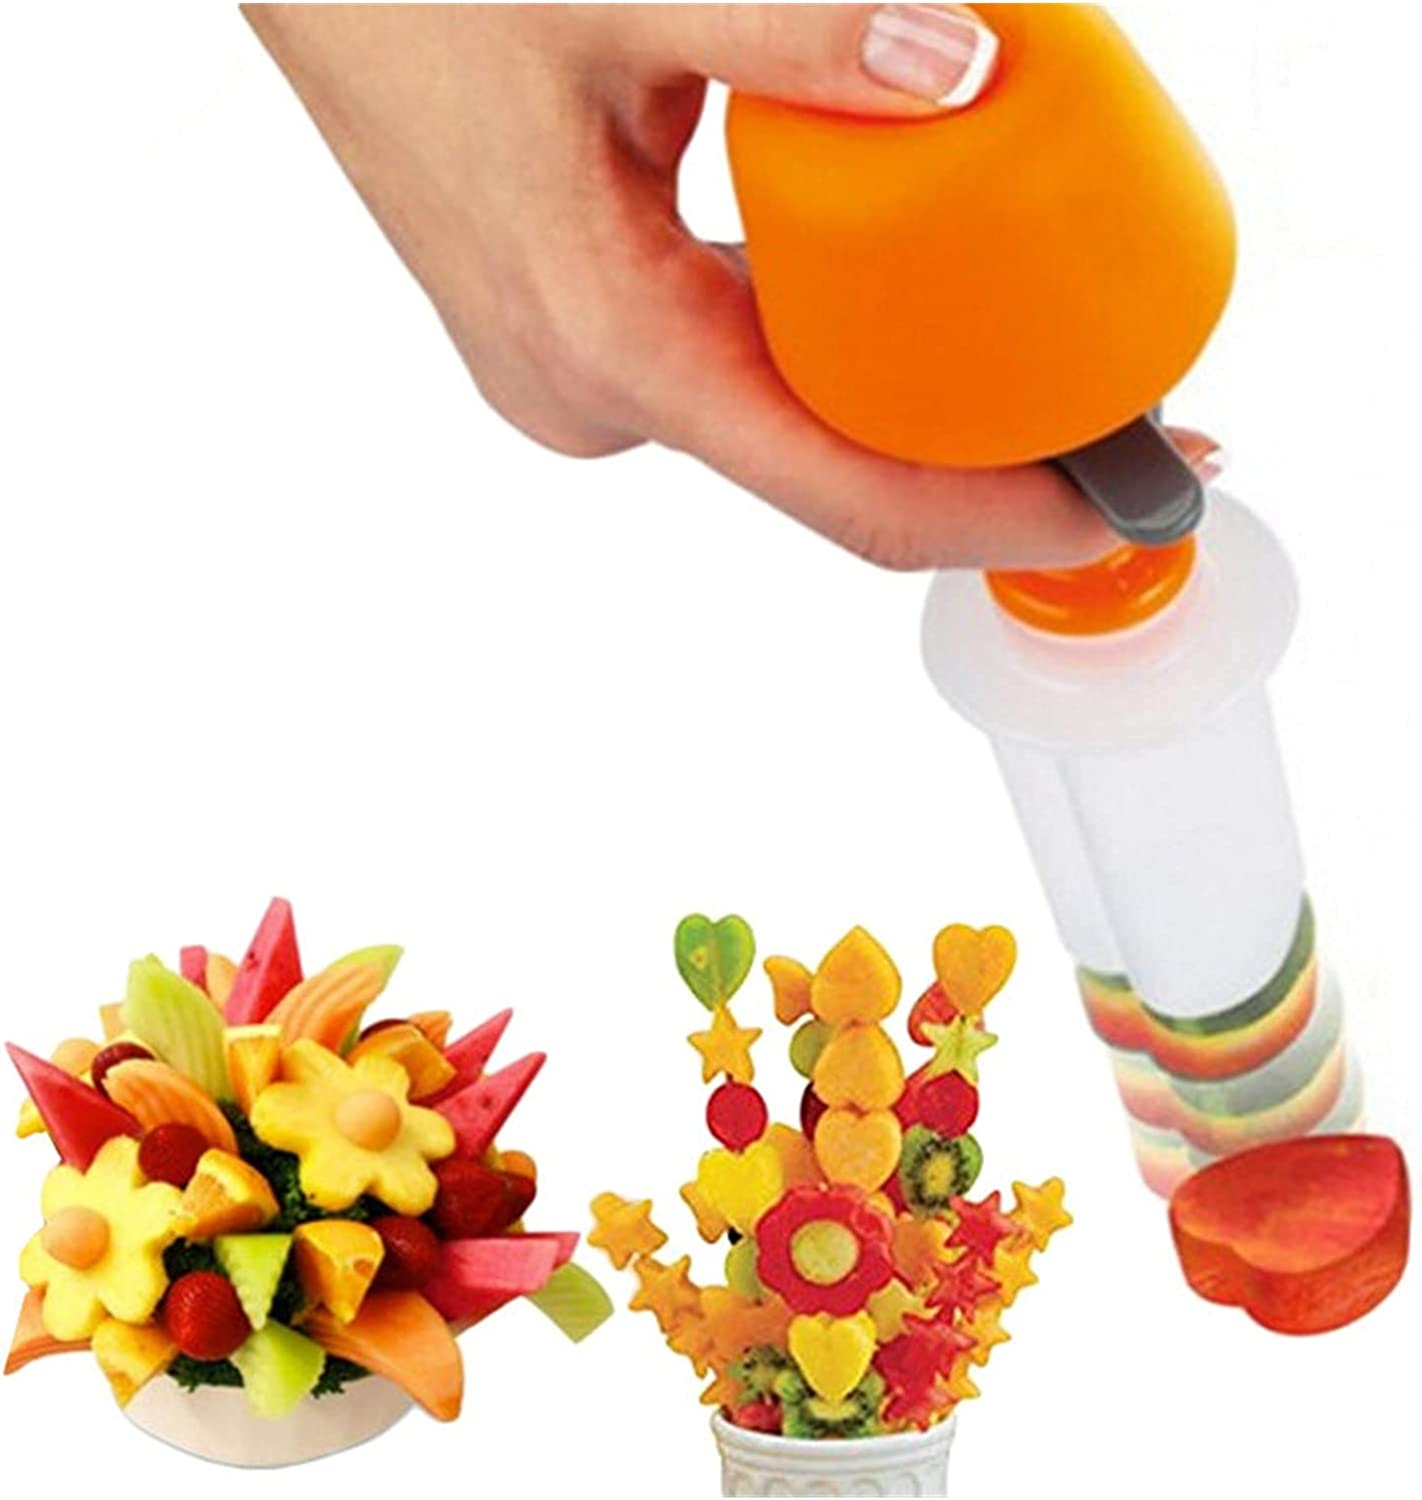 WIPPLY Kitchen All items Animer and price revision in the store Supplies Plastic Vegetable Fruit Slicer Cutter Ve